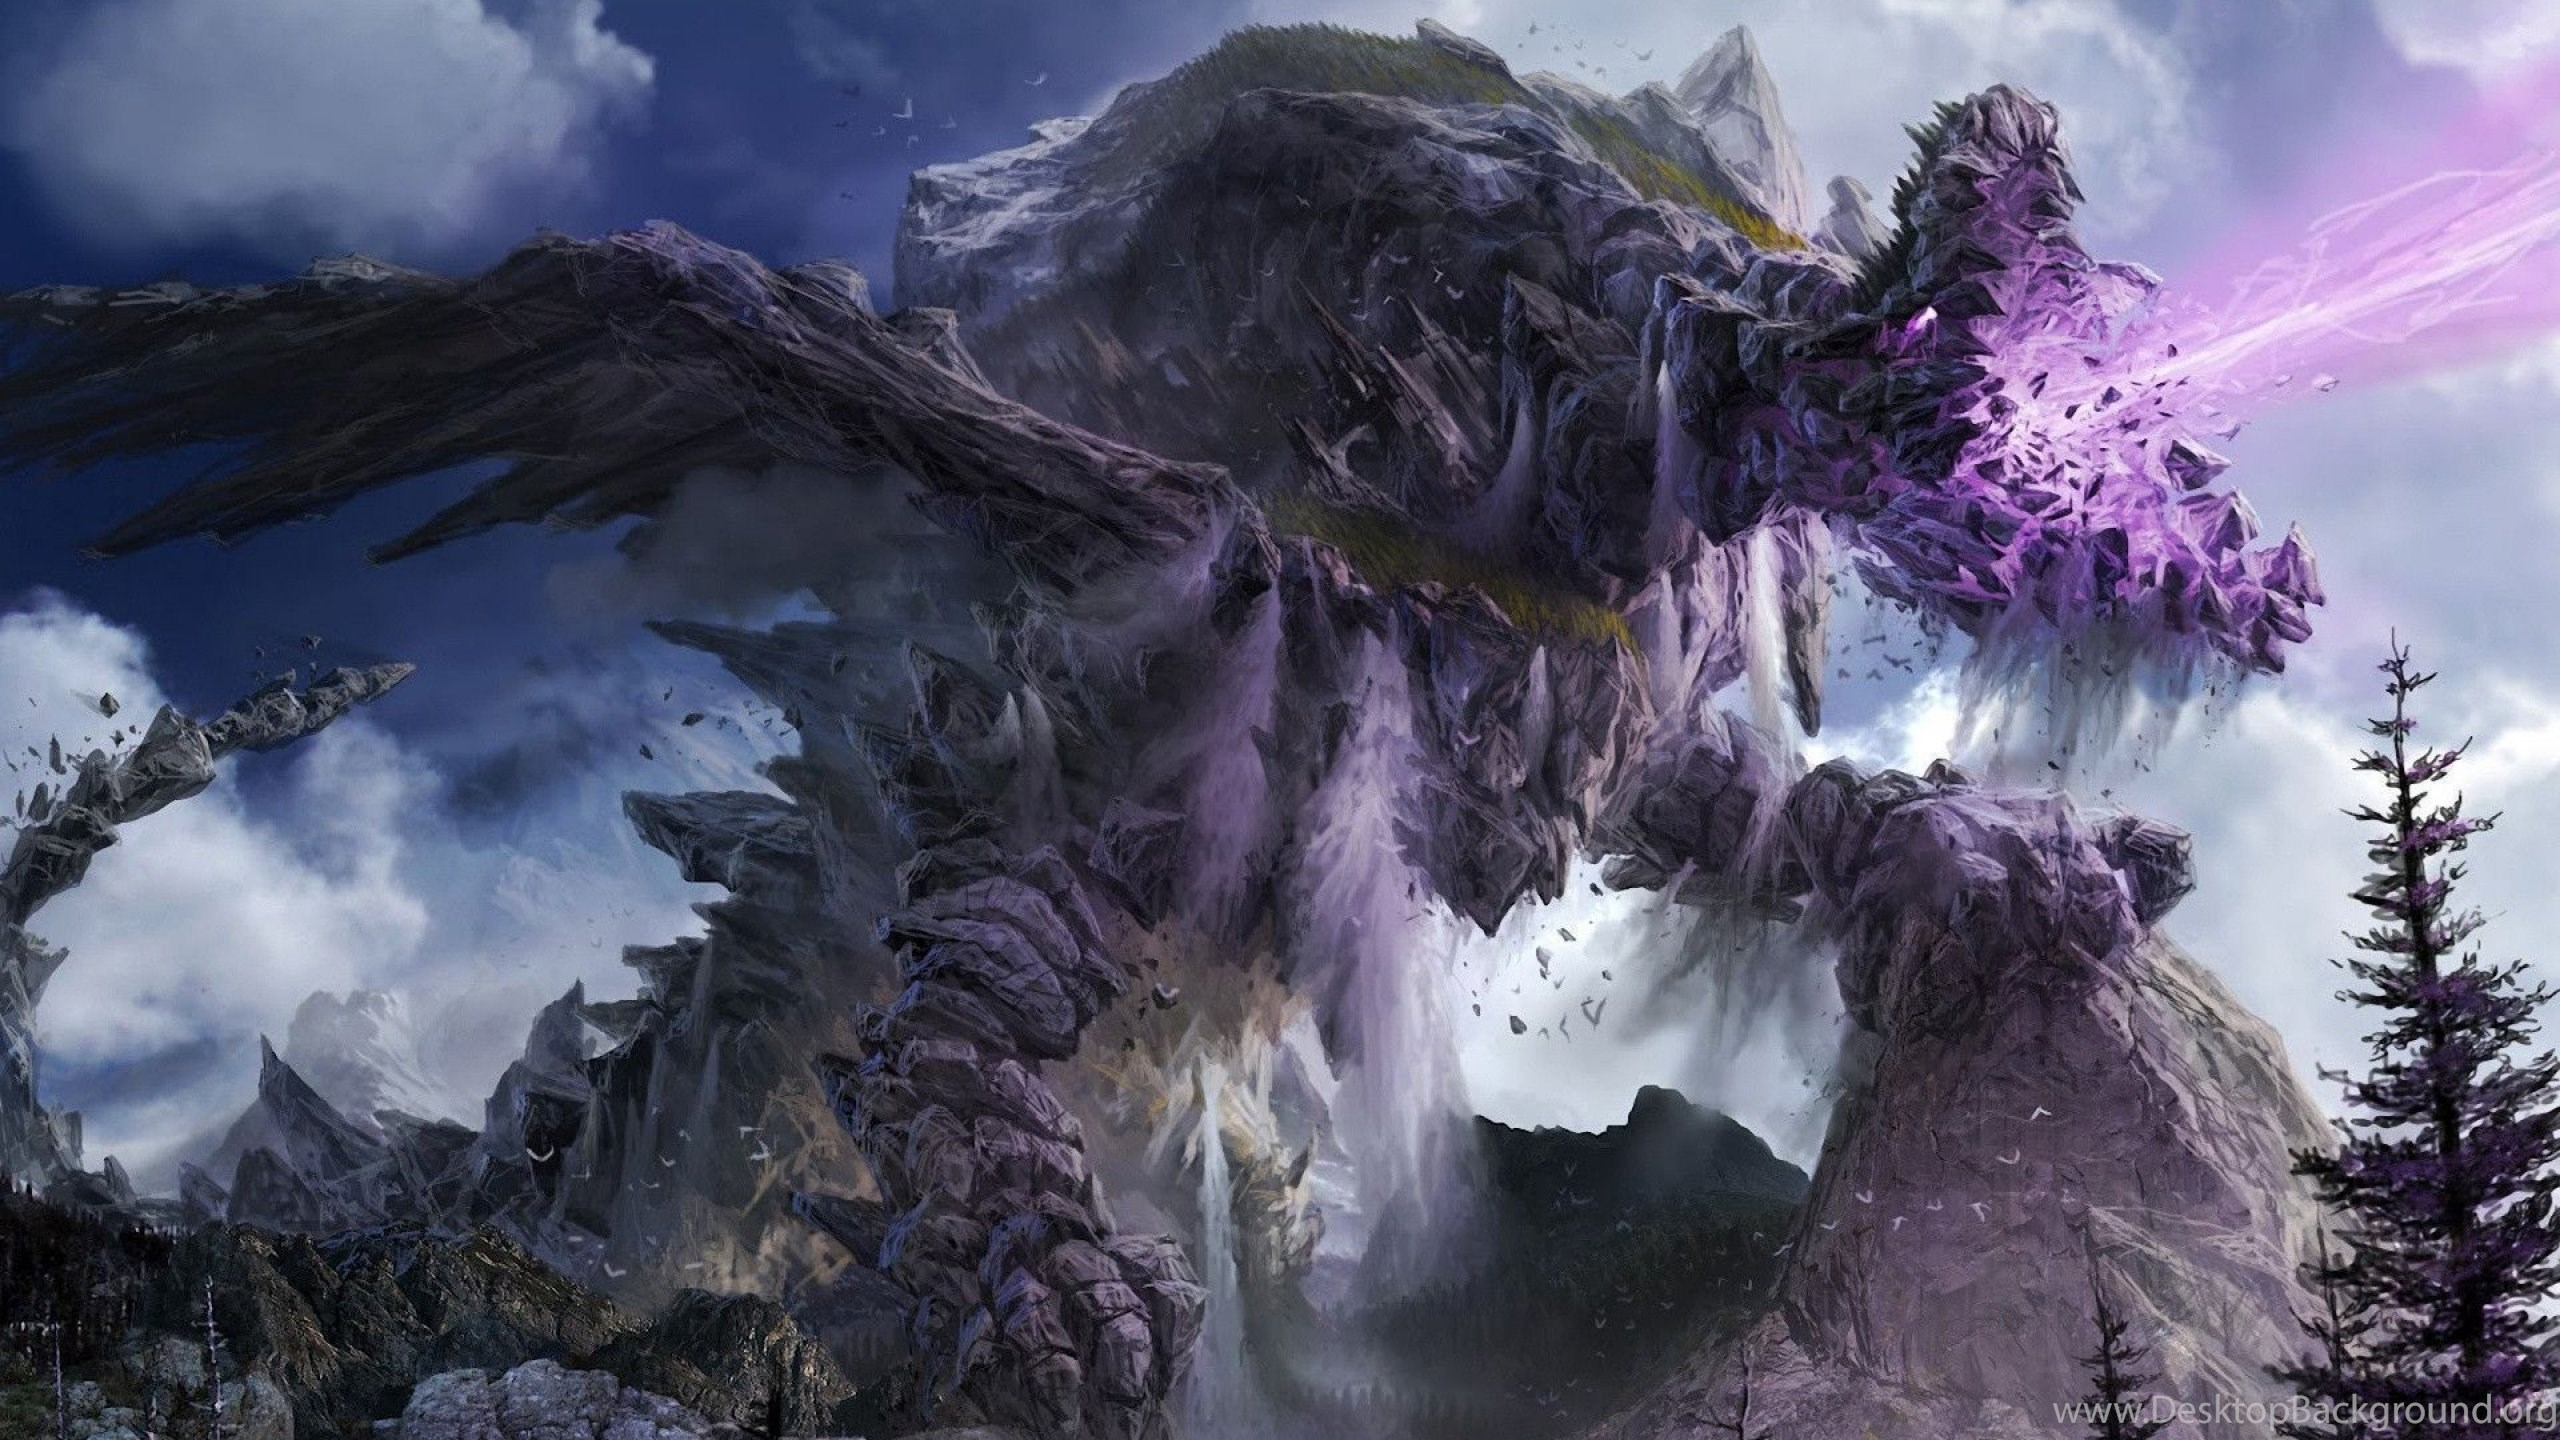 3d Live Waterfall Wallpapers Dragon Fantasy Artwork Art Dragons Wallpapers Desktop